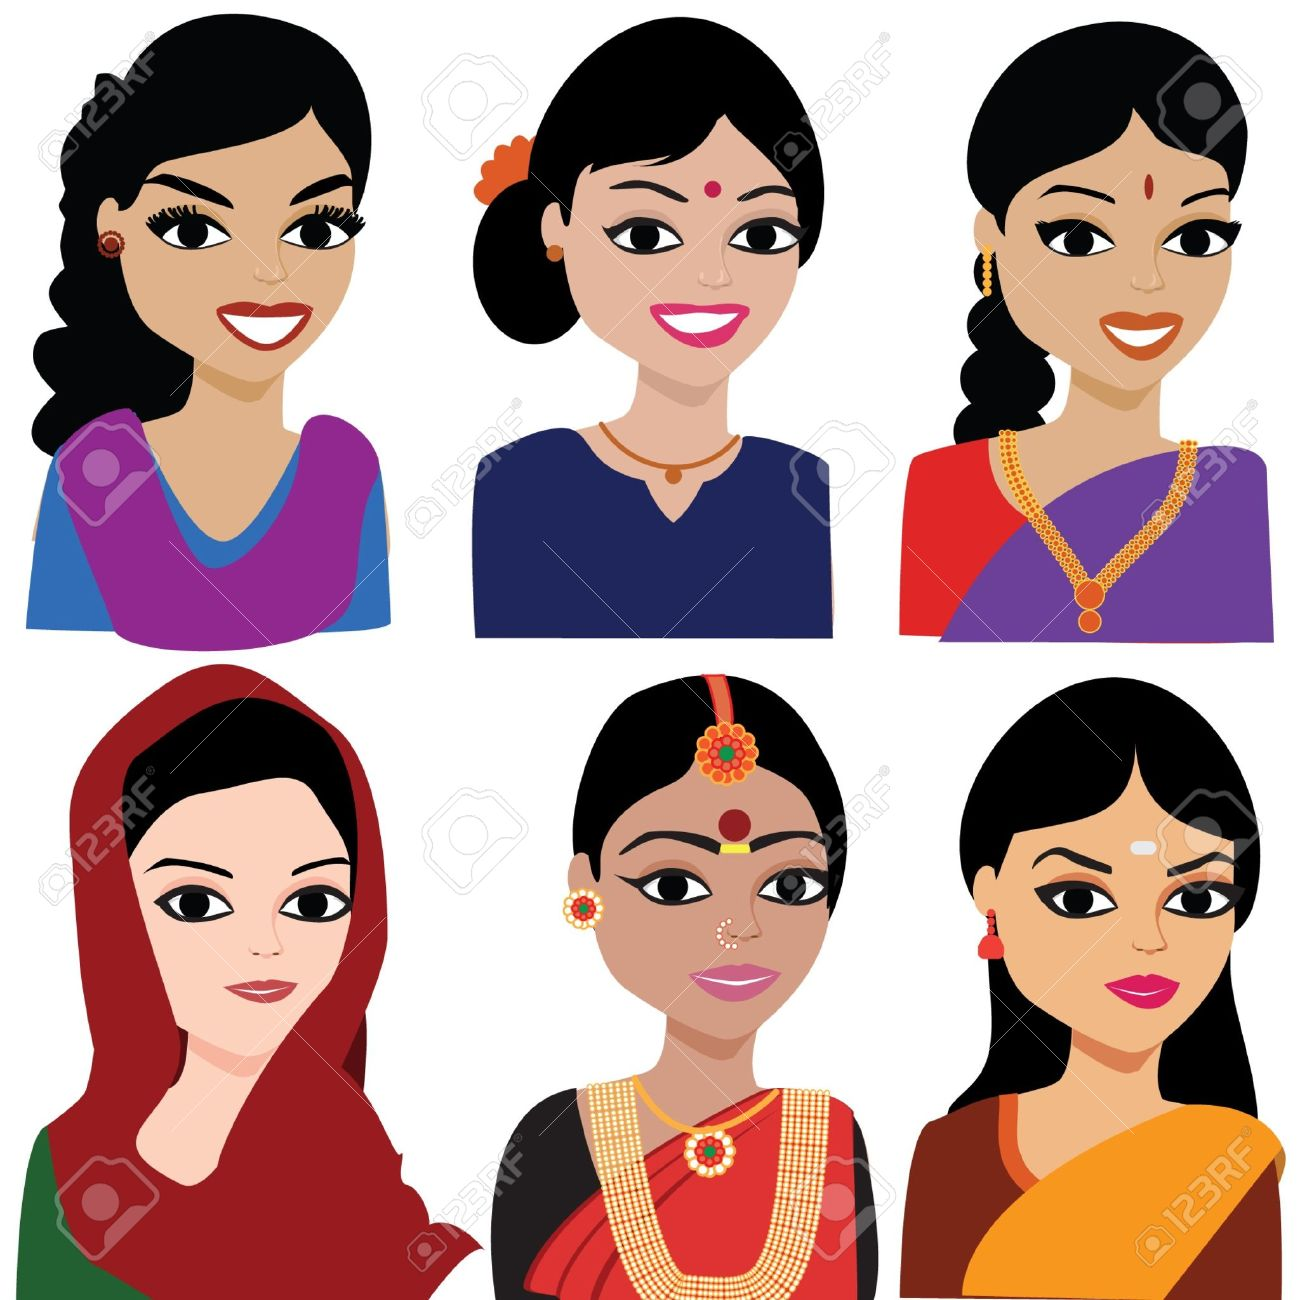 Gorgeus clipart pretty lady Women Cliparts Indian Art